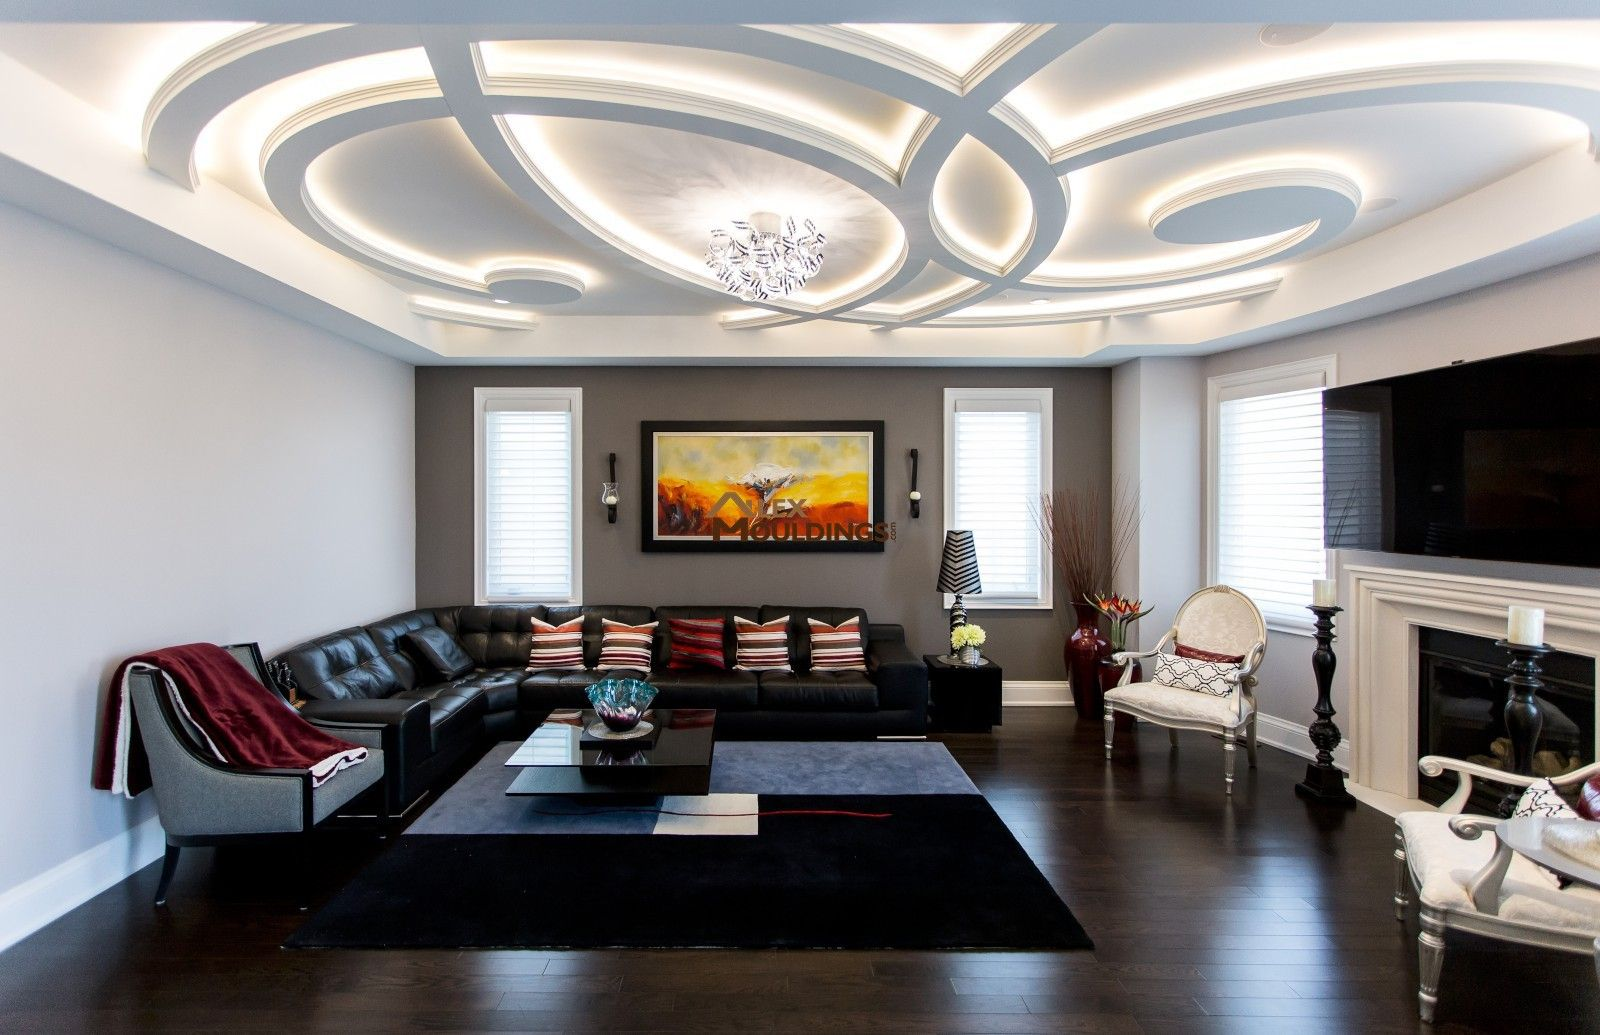 Unique Ceiling Idea For The Living Room With Images Ceiling